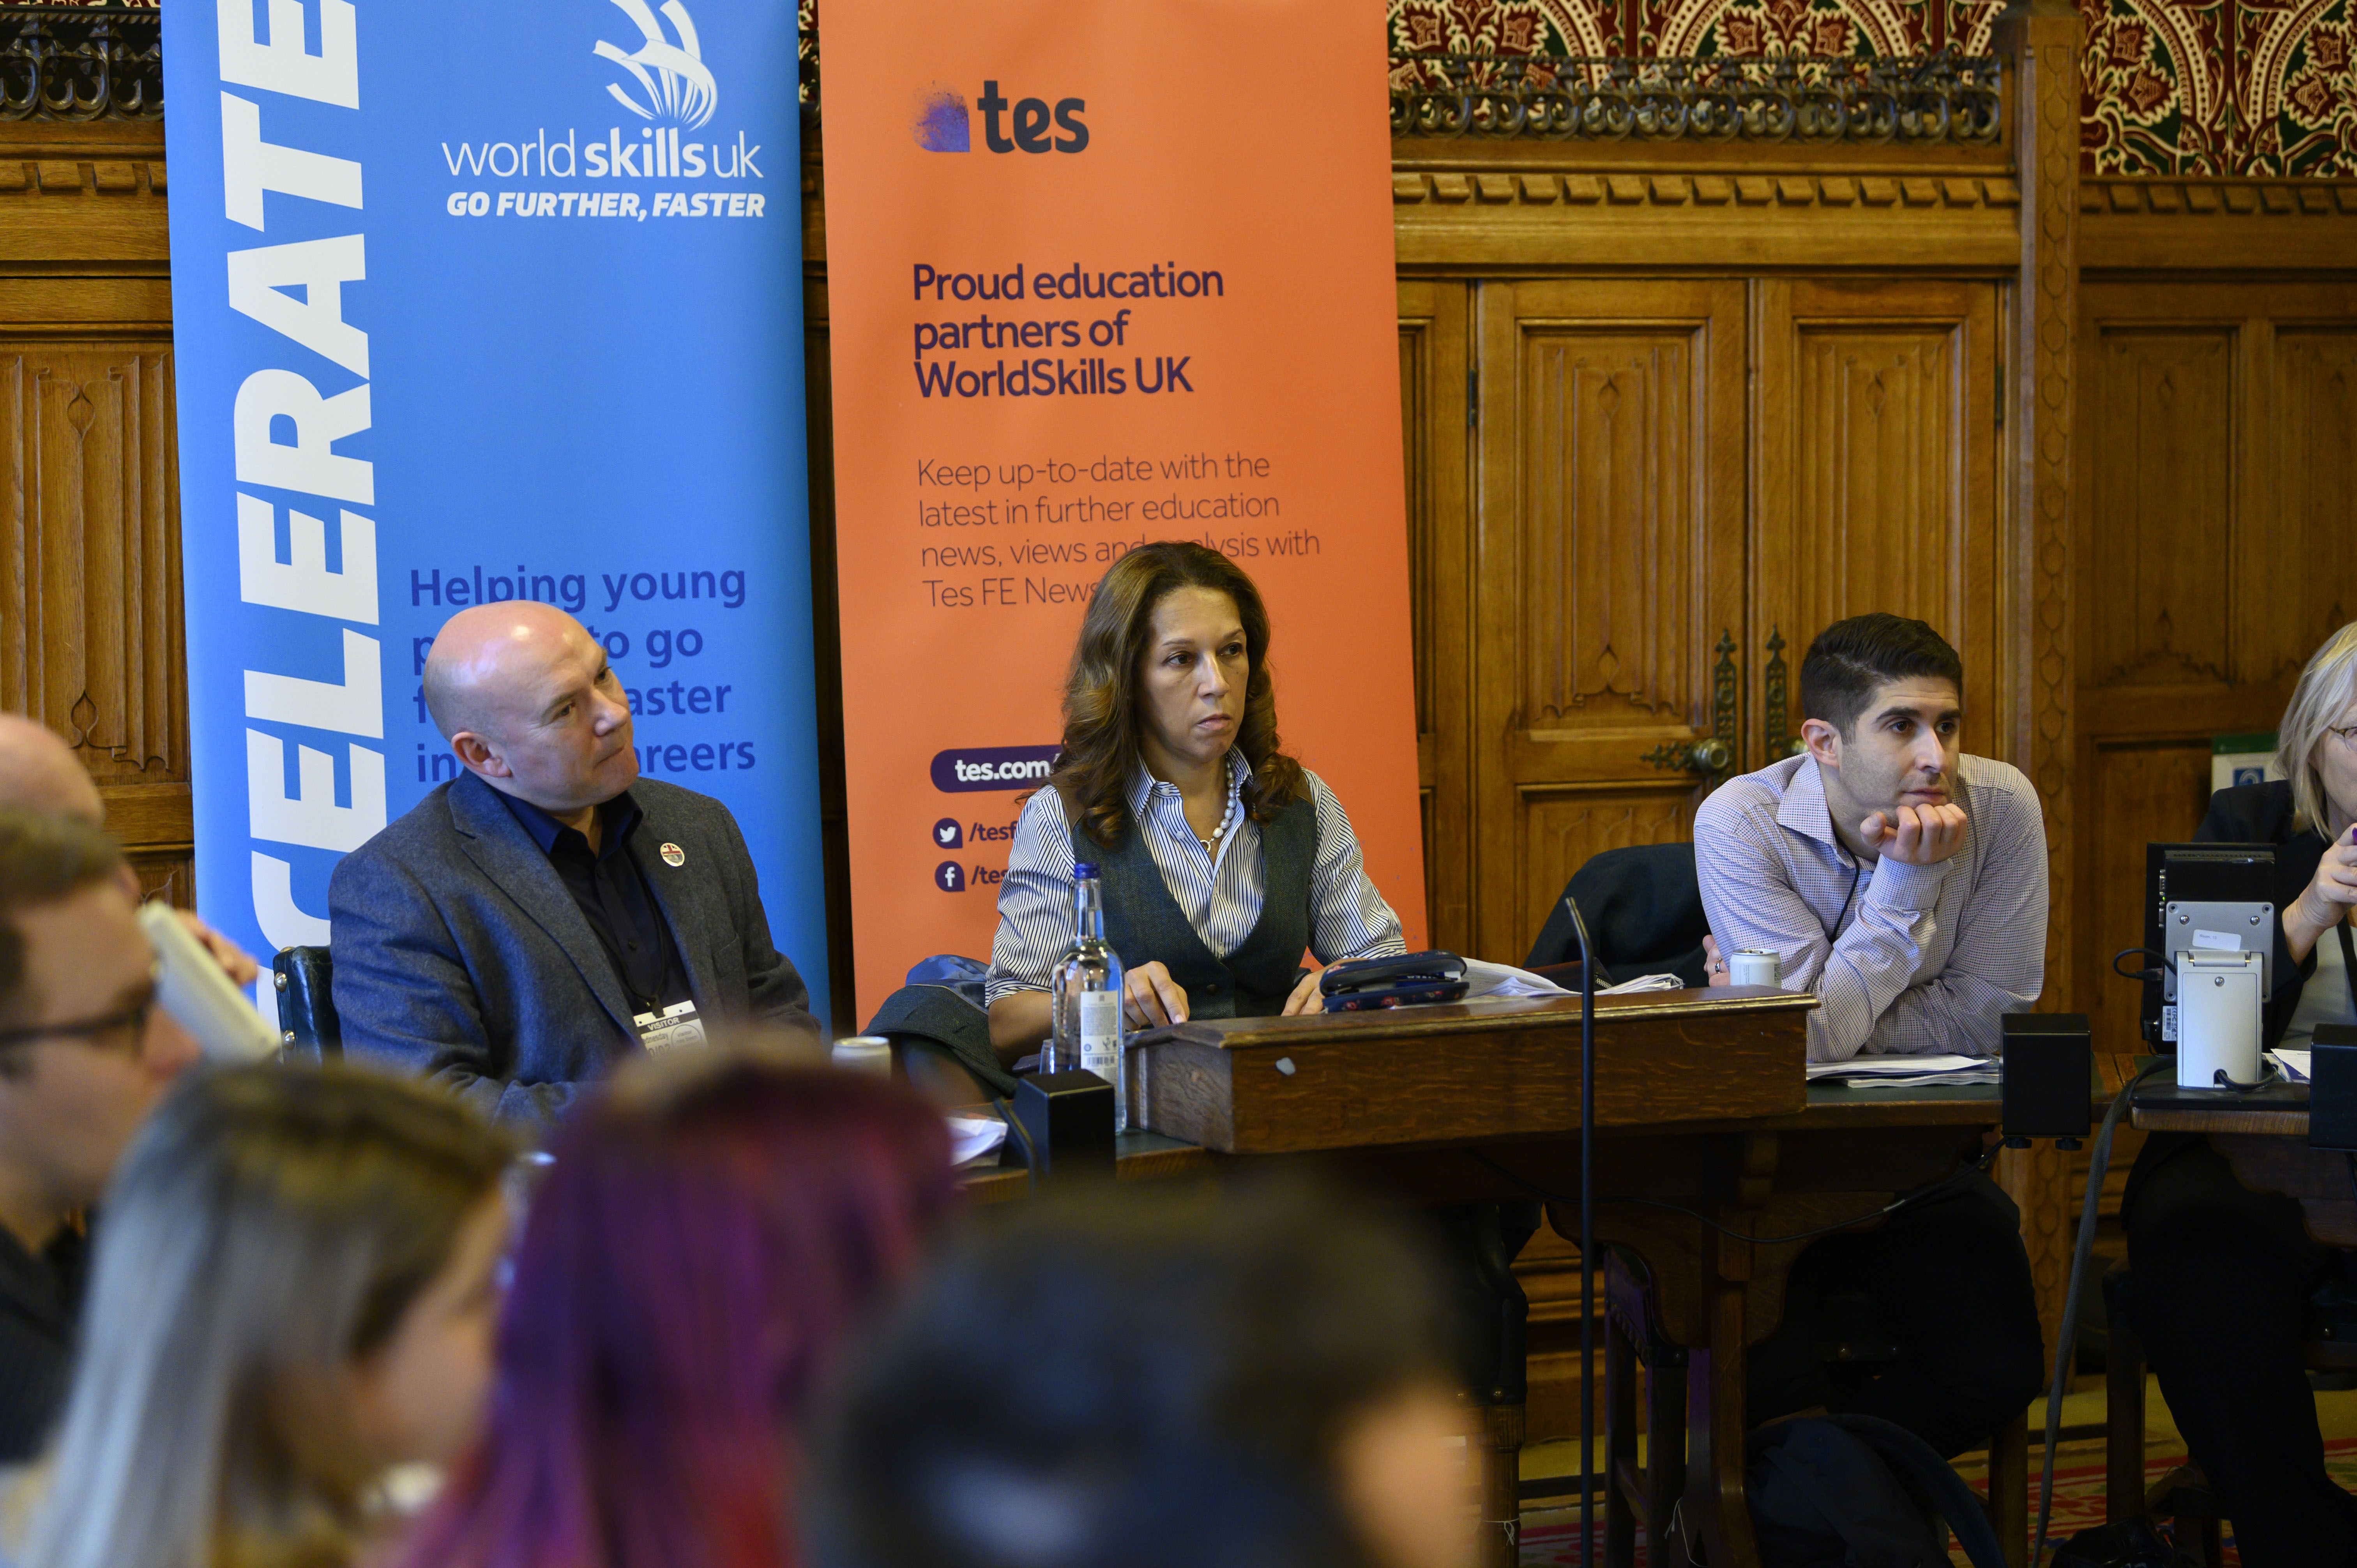 The roundtable panel discussion was organised by Worldskills UK, Tes and PinkNews